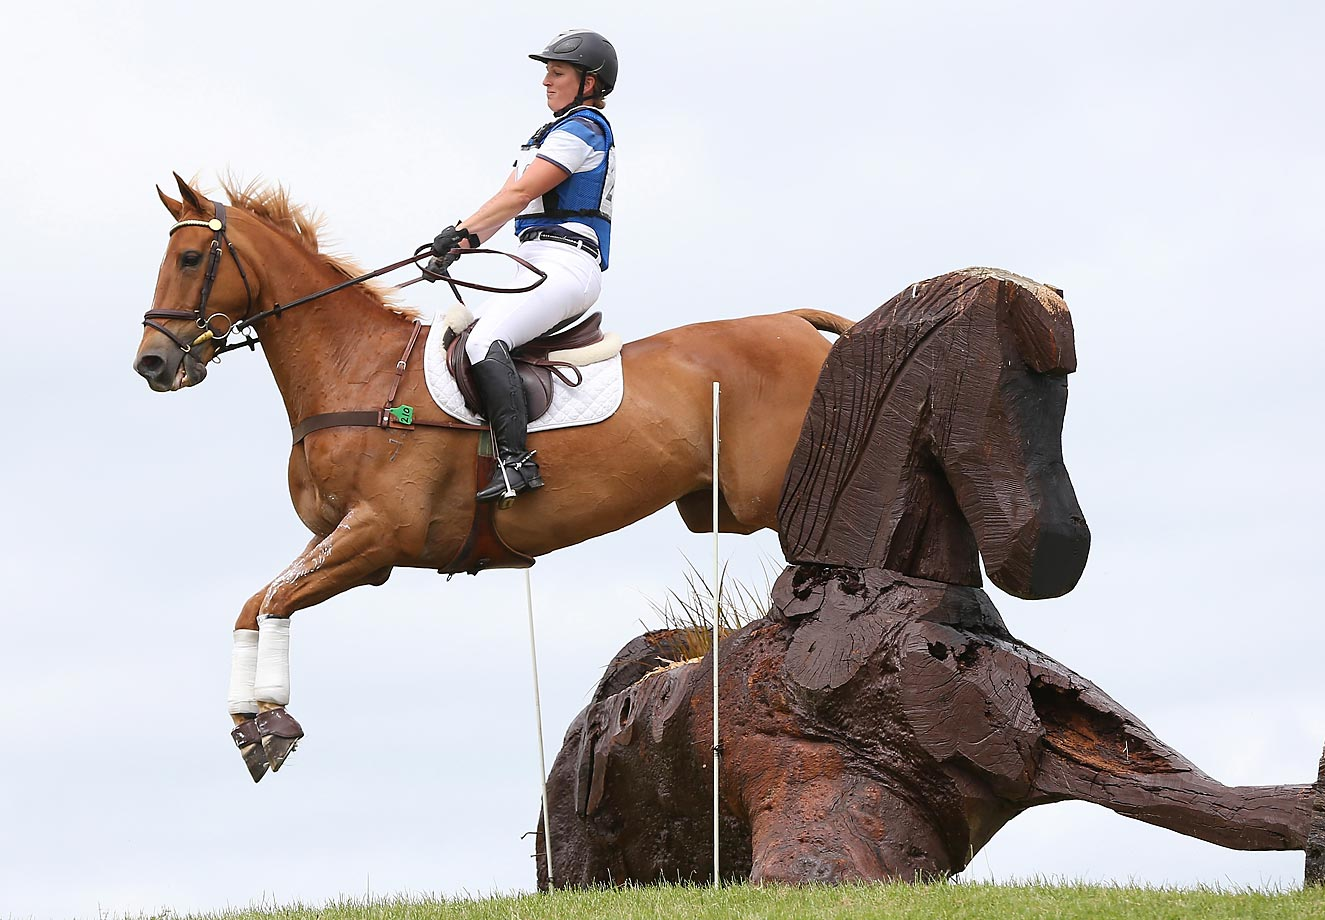 Katherine Van Tuyl riding Double J Sunshine at the Puhinui International in Auckland, New Zealand.